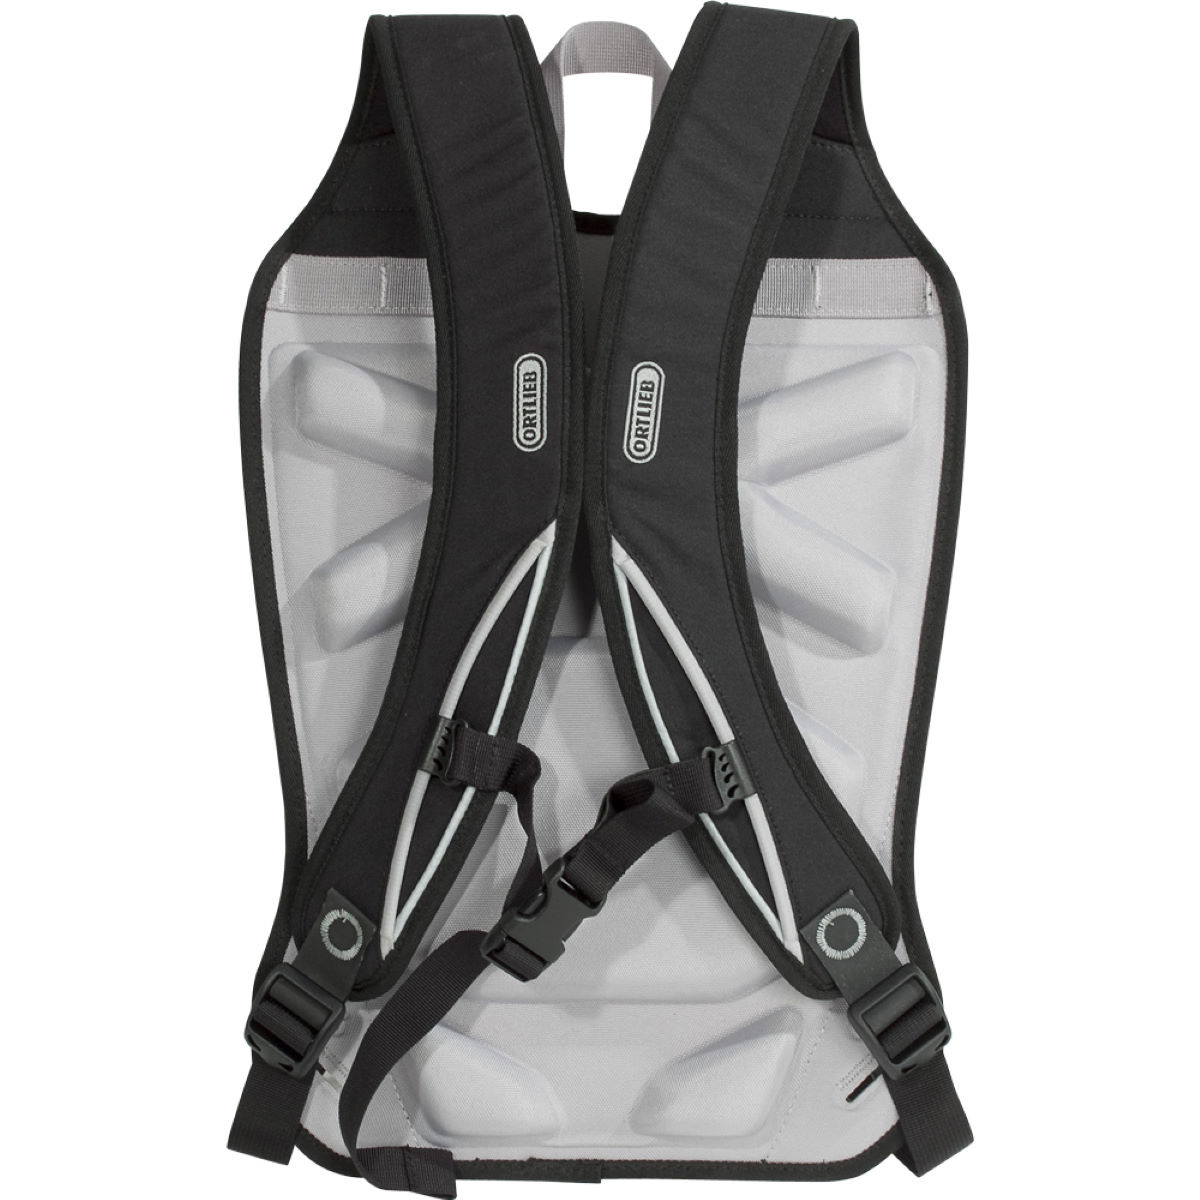 Ortlieb Rucksack Adapter For Panniers